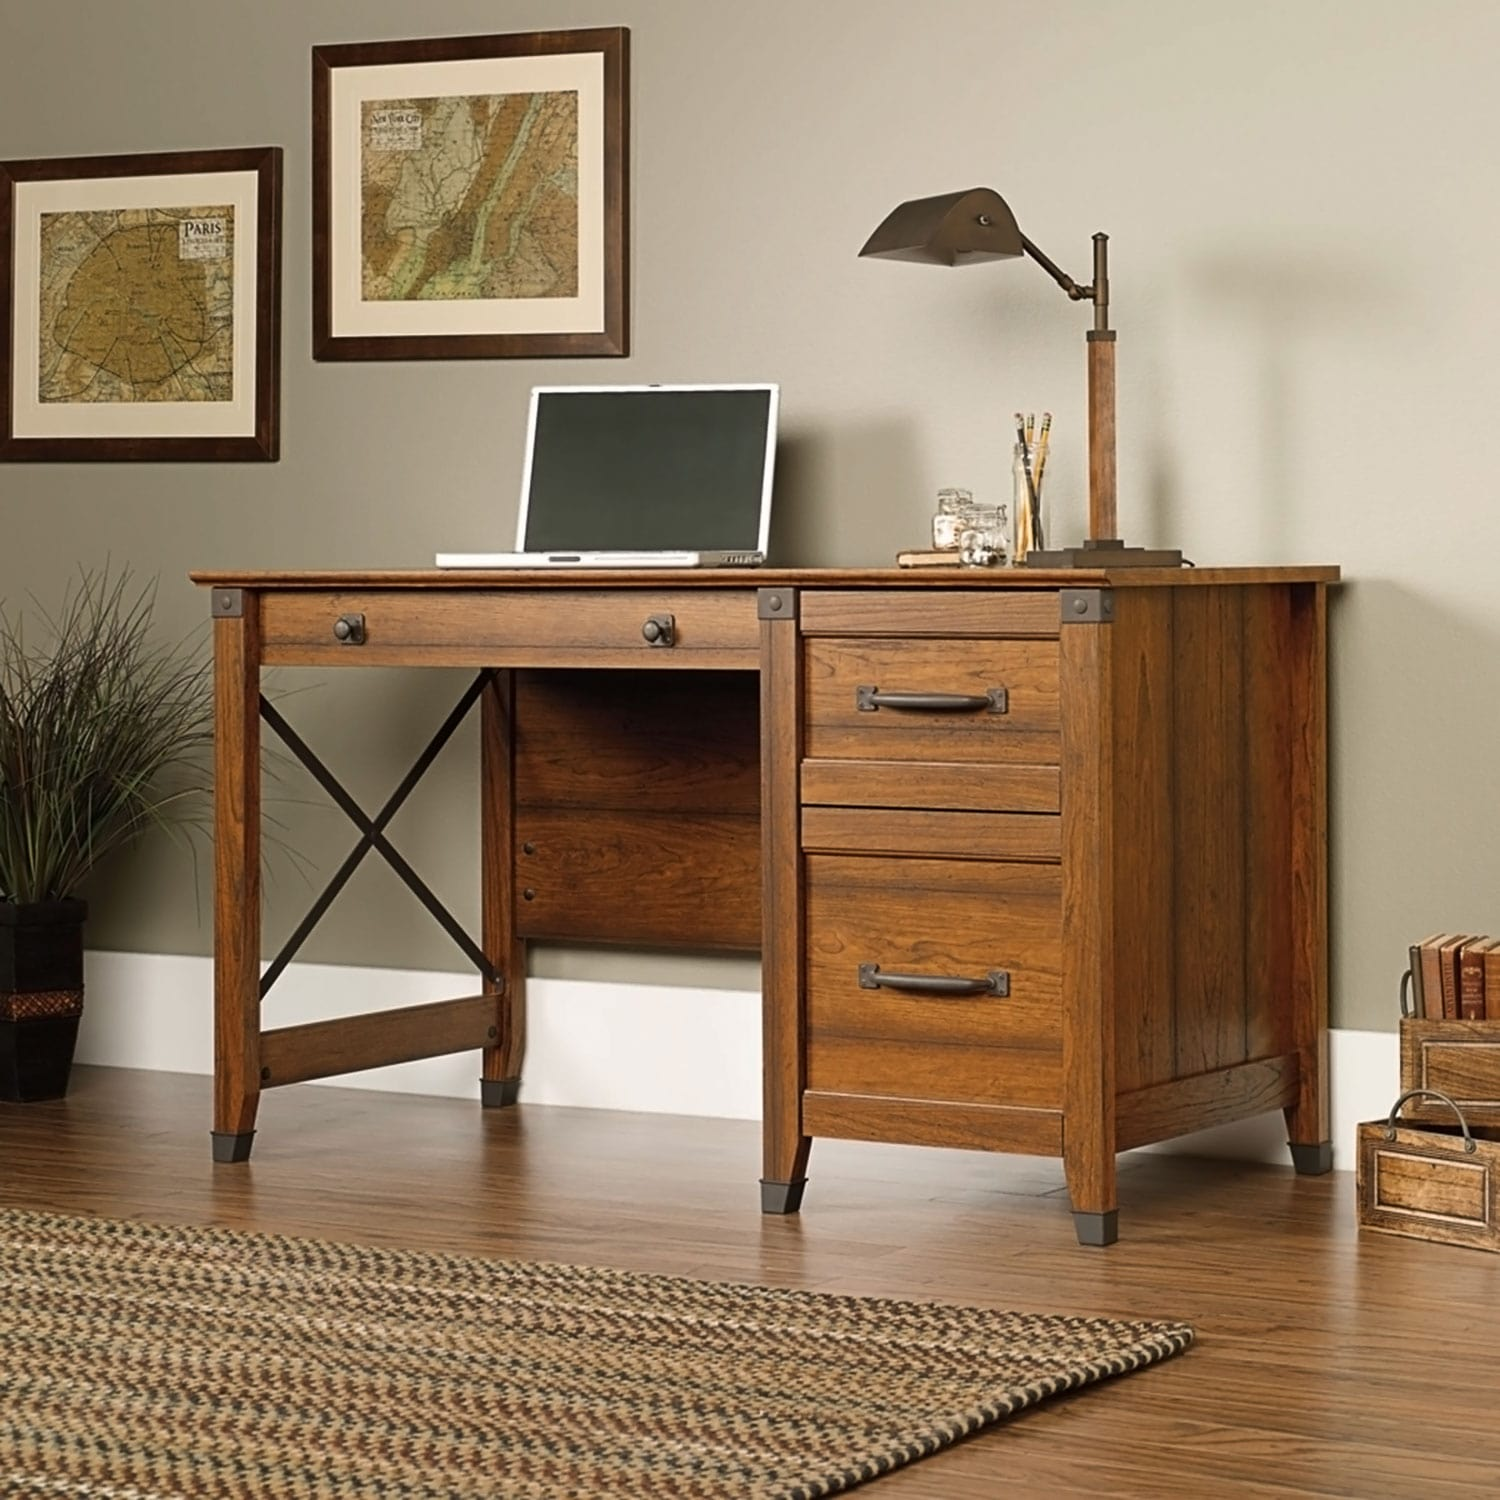 Home Office Furniture - Carson Forge Desk - Cherry